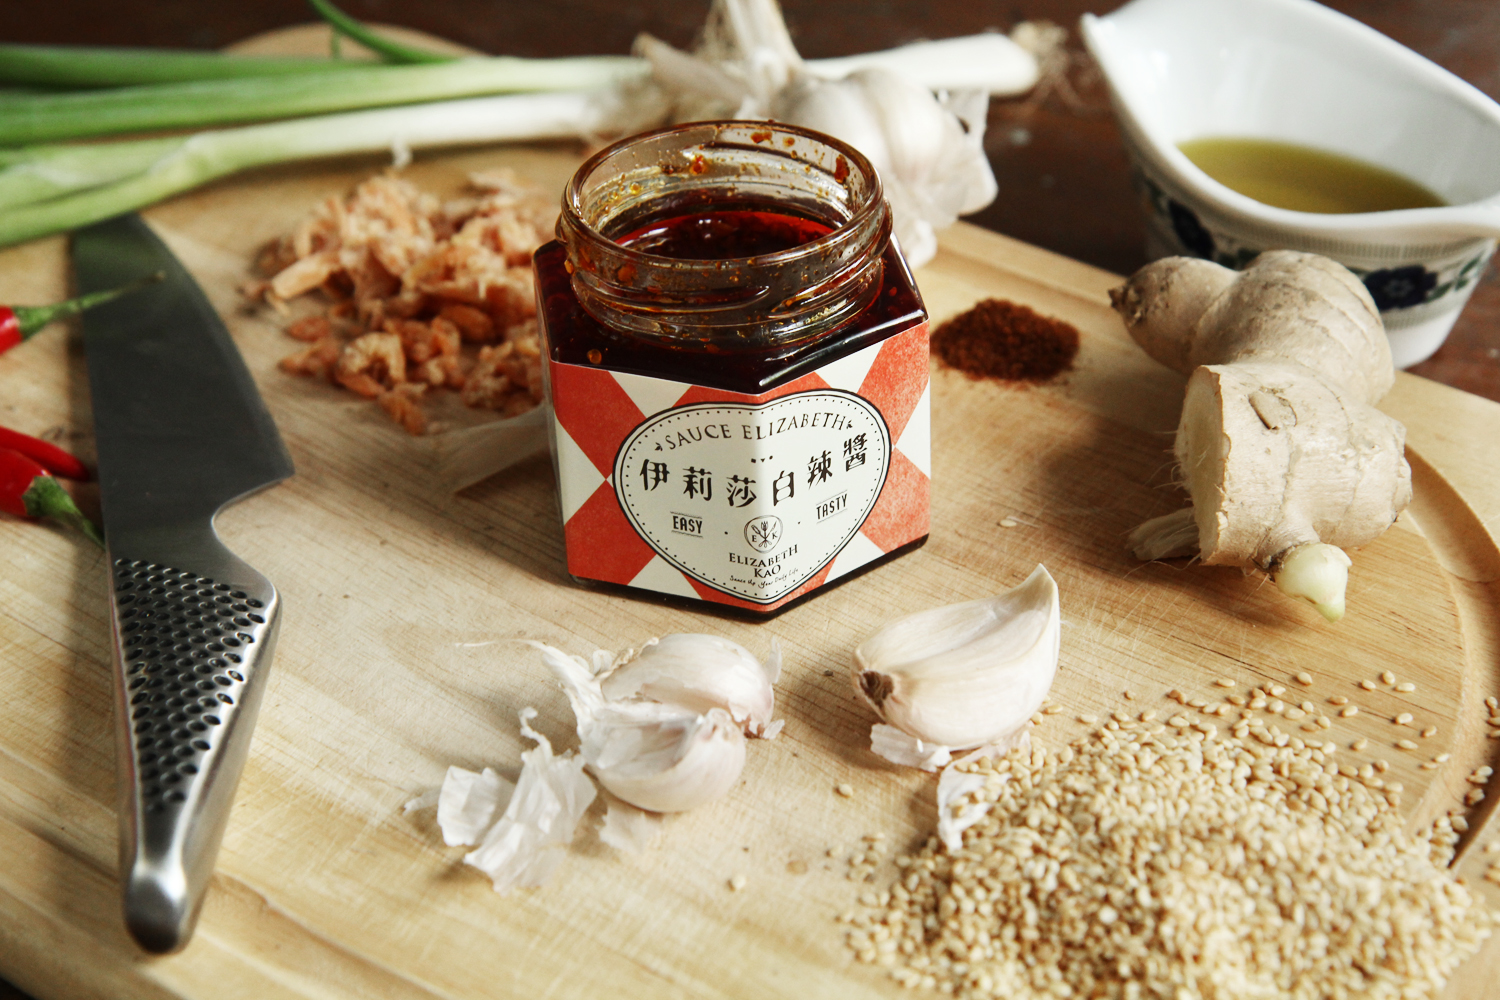 Product identity and packaging - Elizabeth spicy sauce